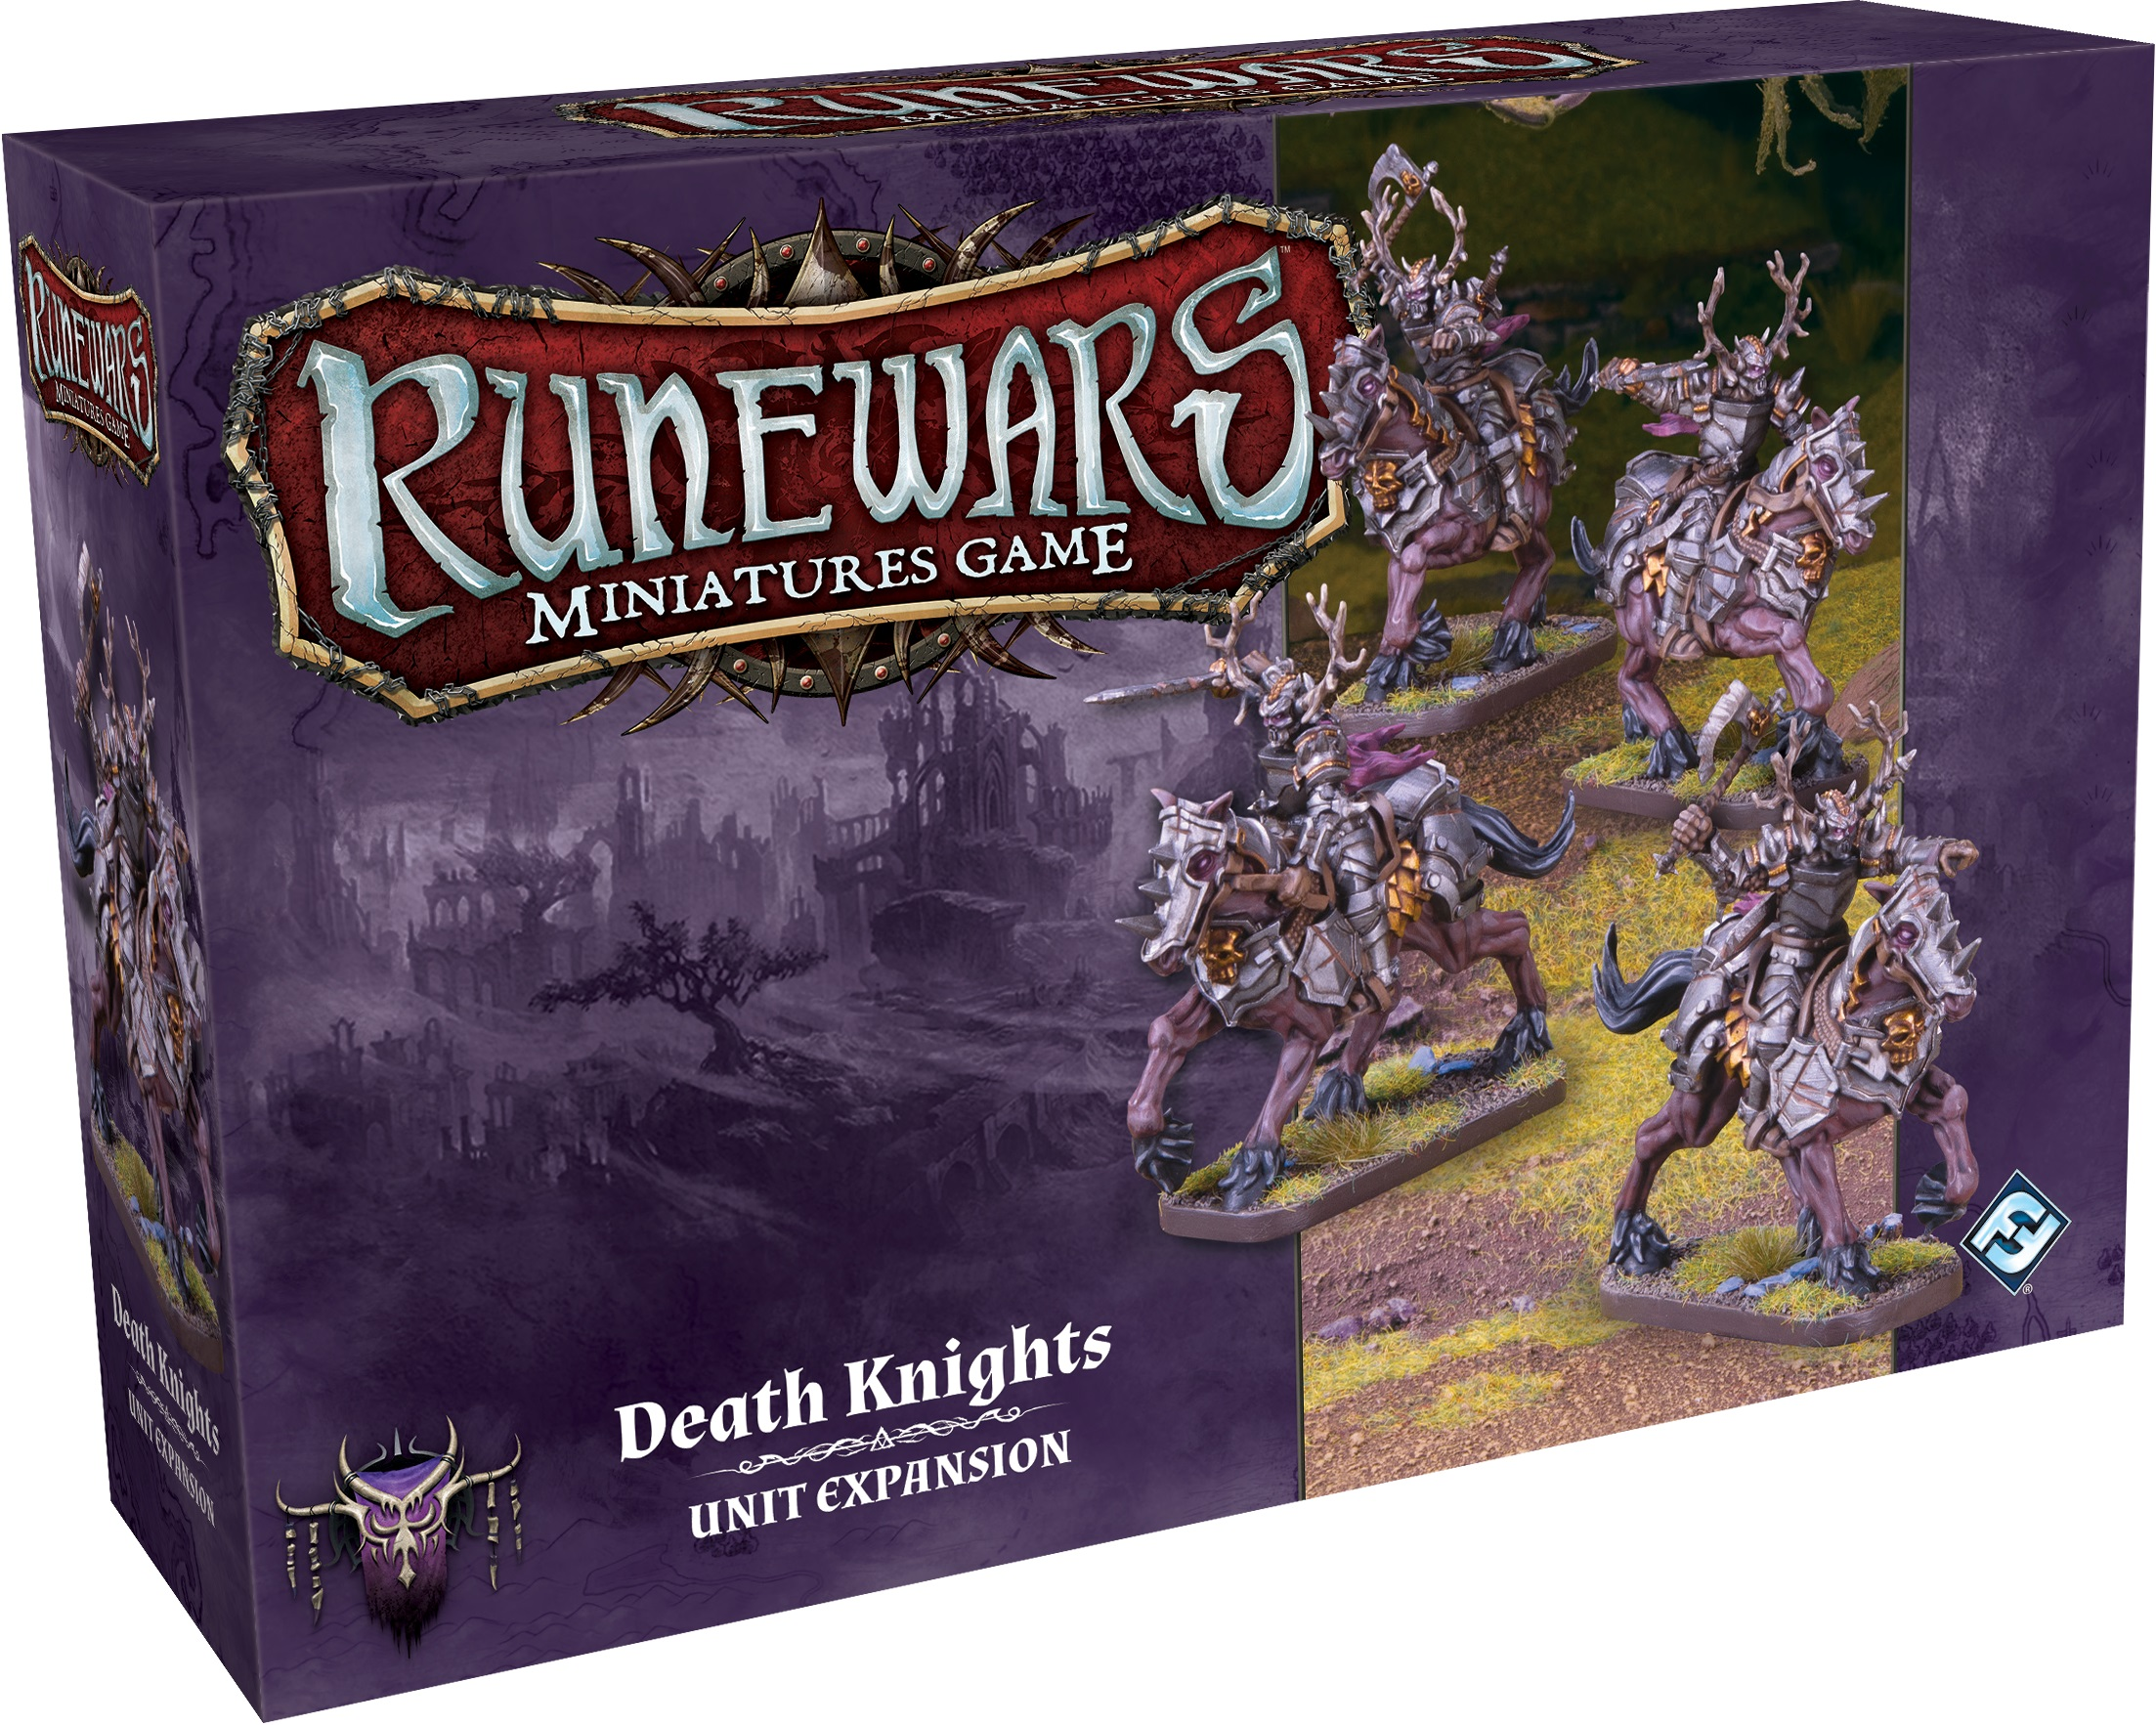 Runewars: The Miniatures Game - Death Knights Unit Expansion Box Front